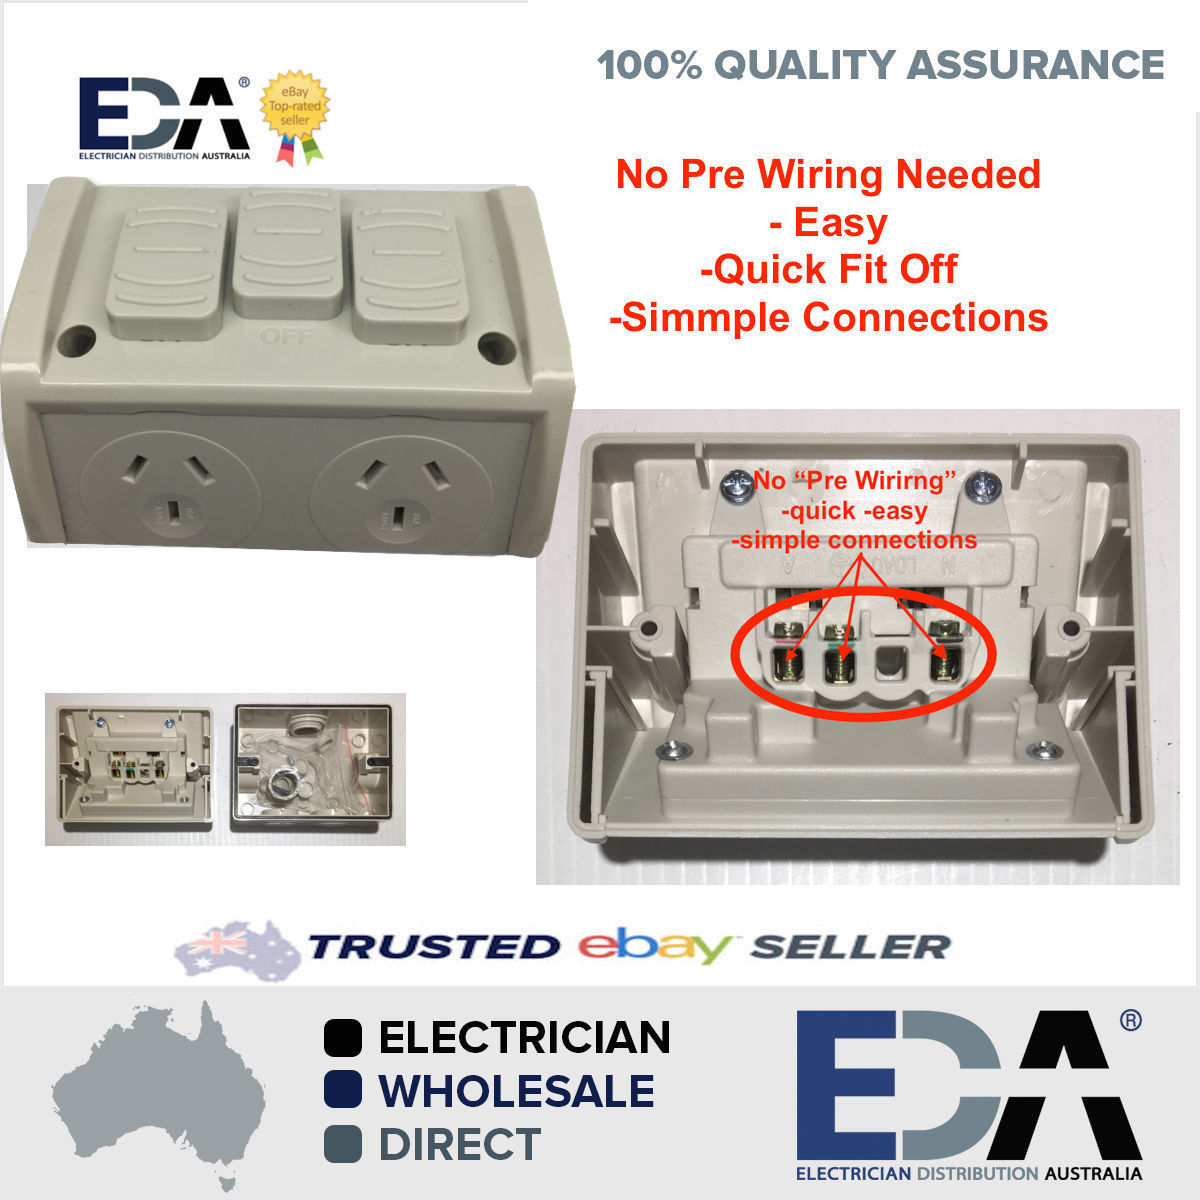 Weatherproof dgpo extra switch no wiring double power point quick extra switch no wiring double power point quick fit off easy asfbconference2016 Image collections